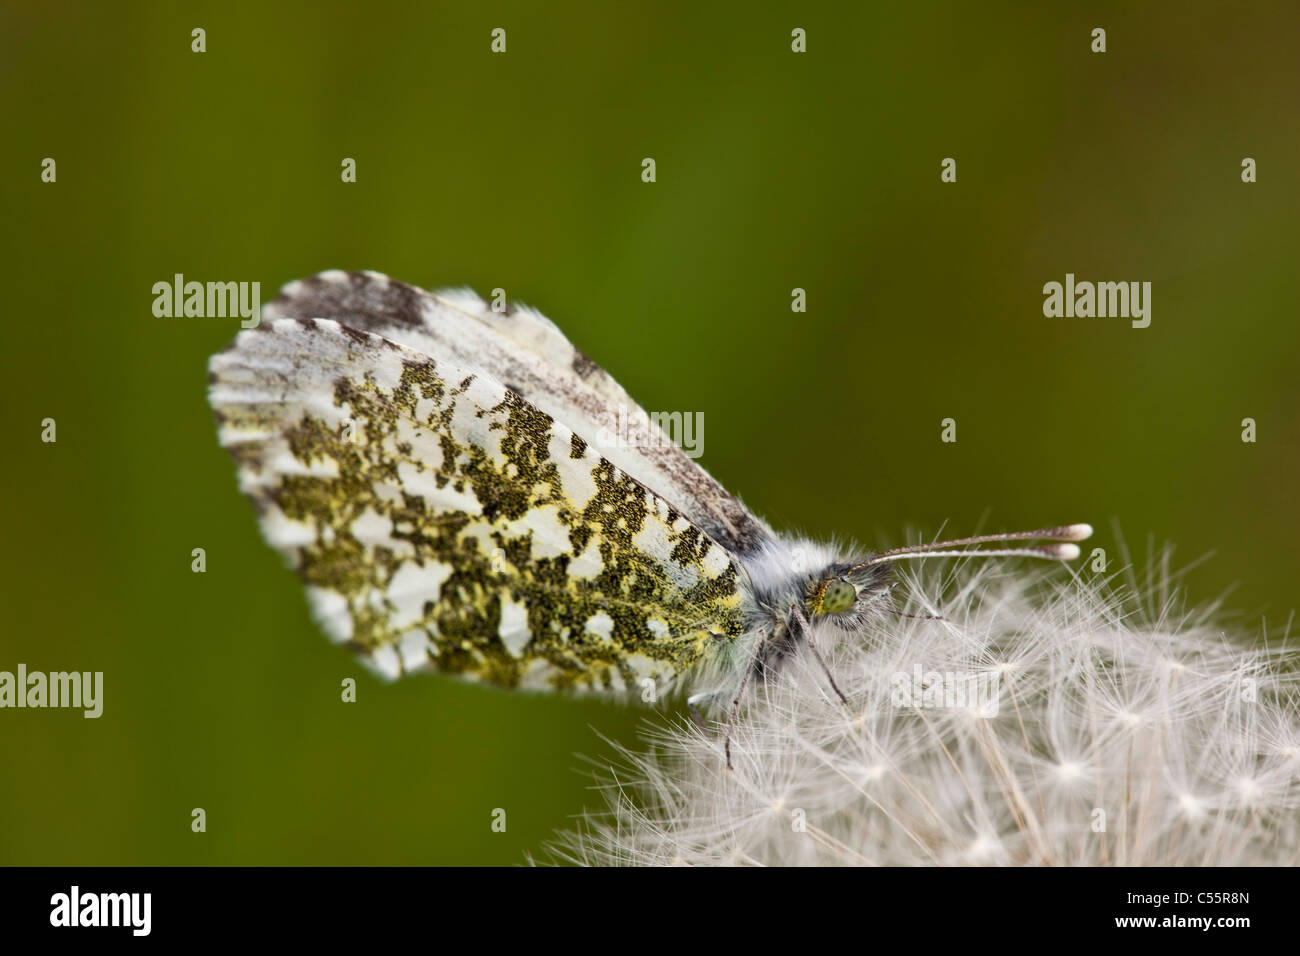 The Netherlands, Loon op Zand, Female Orange Tip butterfly, Anthocharis cardamines, on Dandelion pappus. Stock Photo